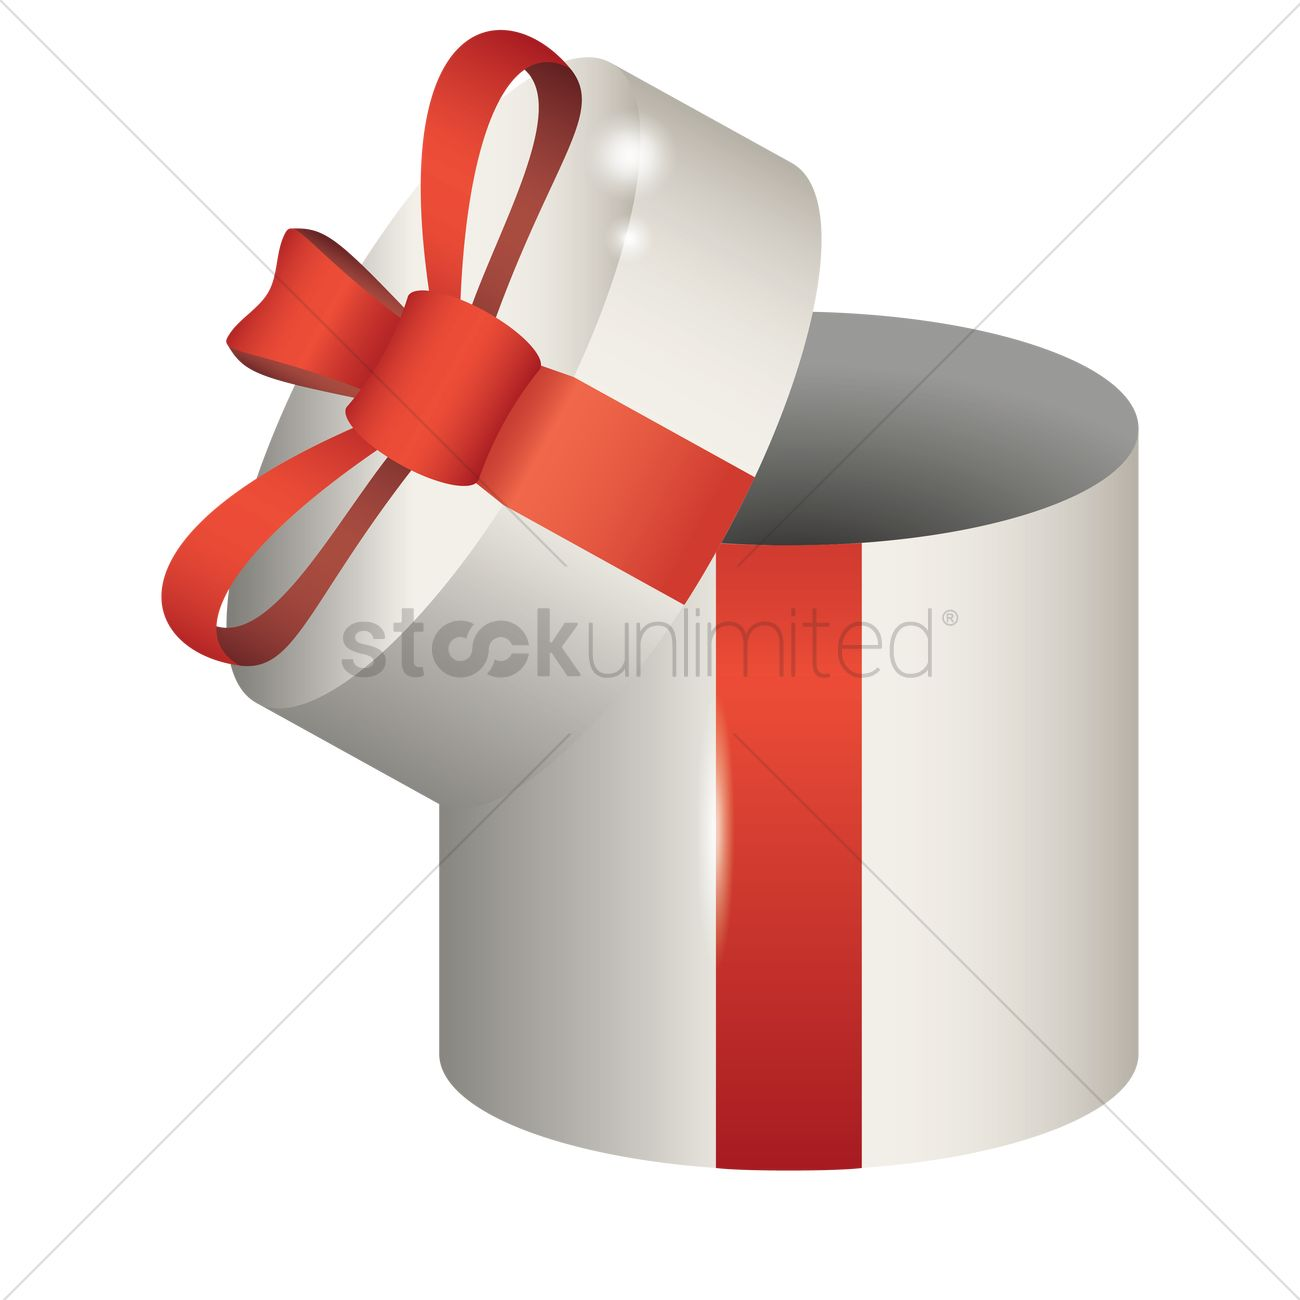 633663a8c65c8 Opened gift box Vector Image - 1935432